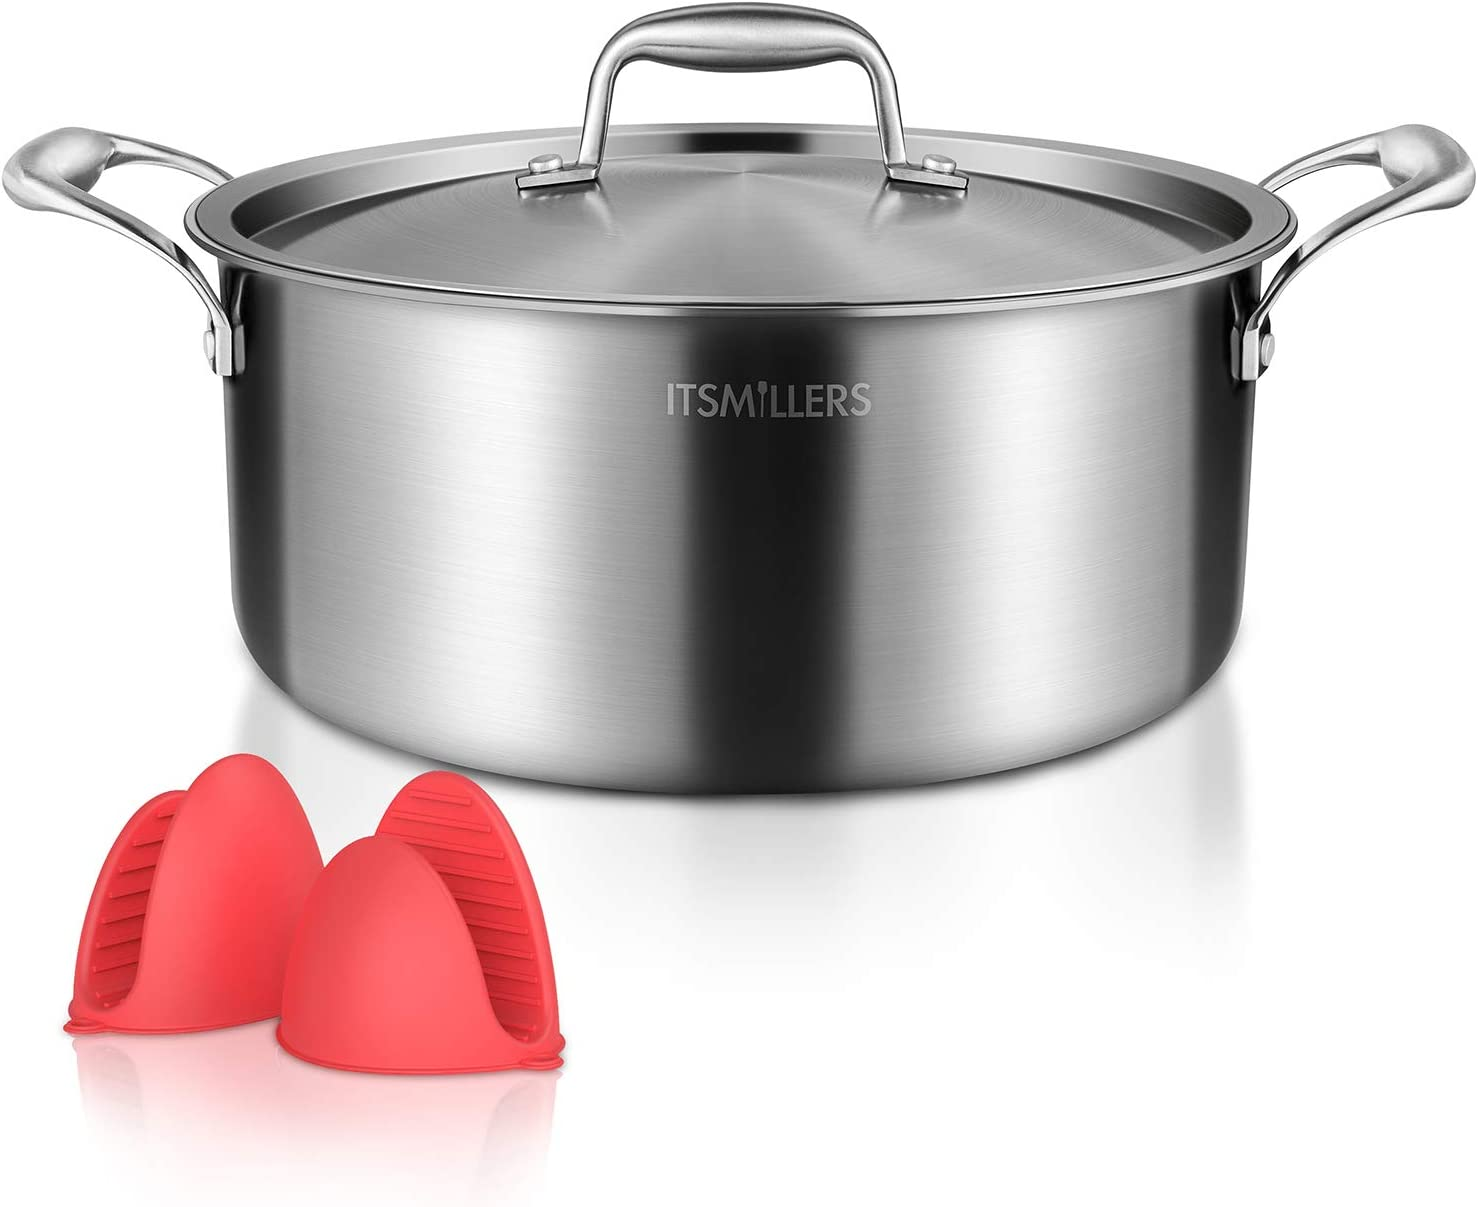 ITSMILLERS Premium Tri-ply Stainless Steel Stock pot with lid, 8-Quart Harm Free Dutch Oven with Silicone Oven Mitts,Oven Safe up to 500°F